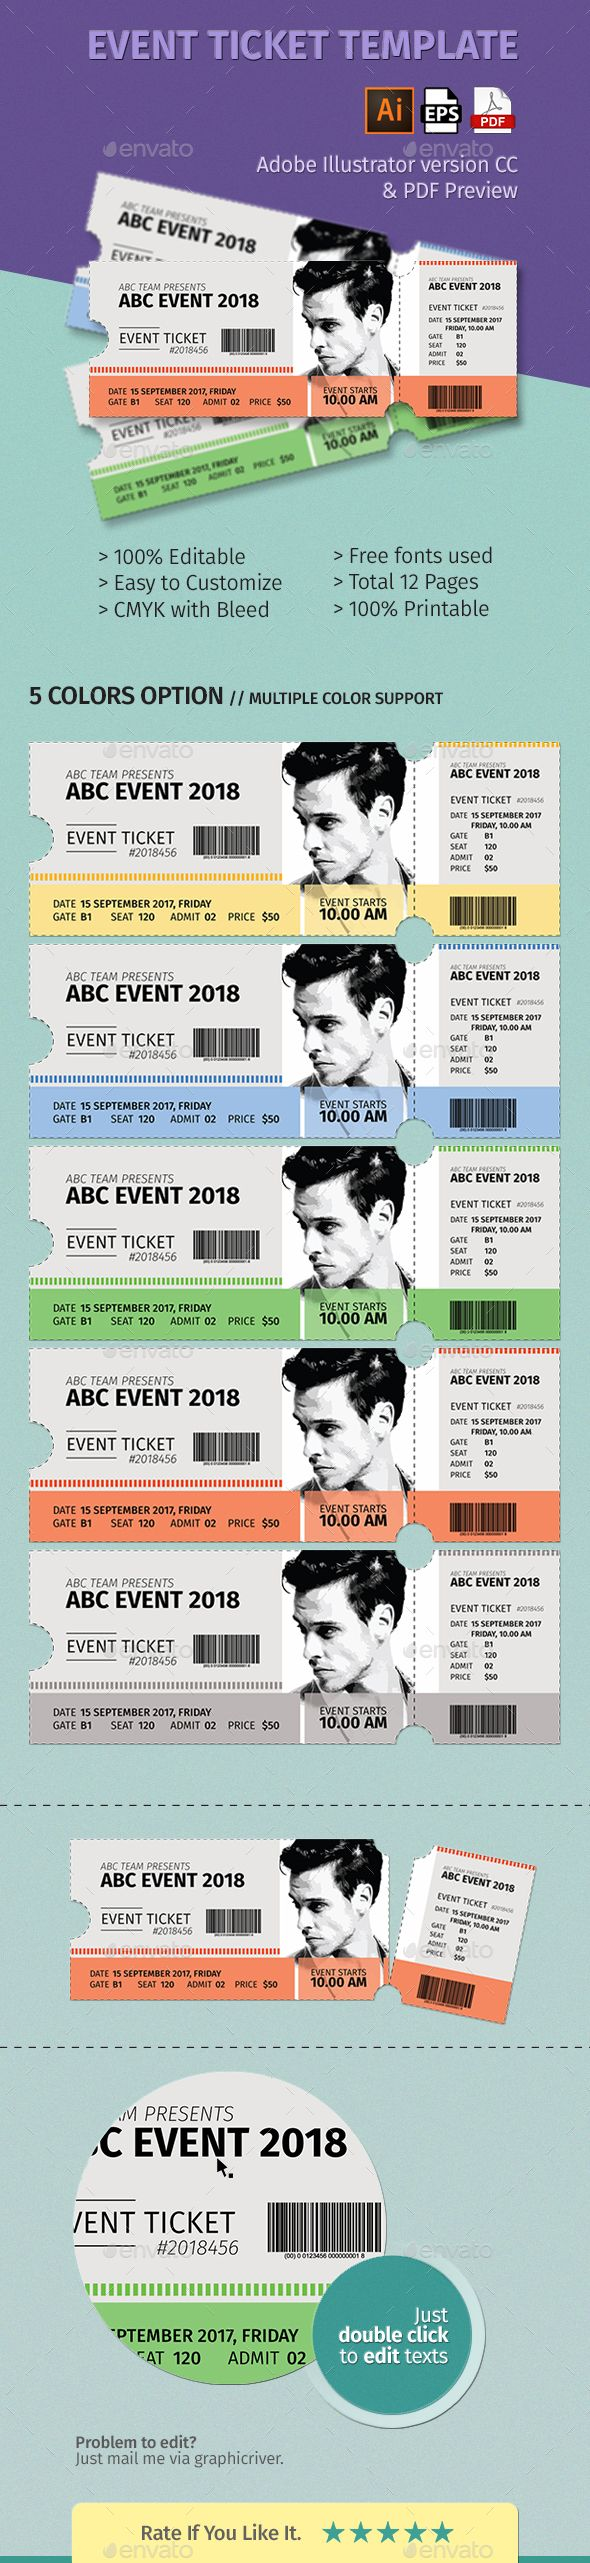 Event Ticket Template Volume 01 - Events Flyers